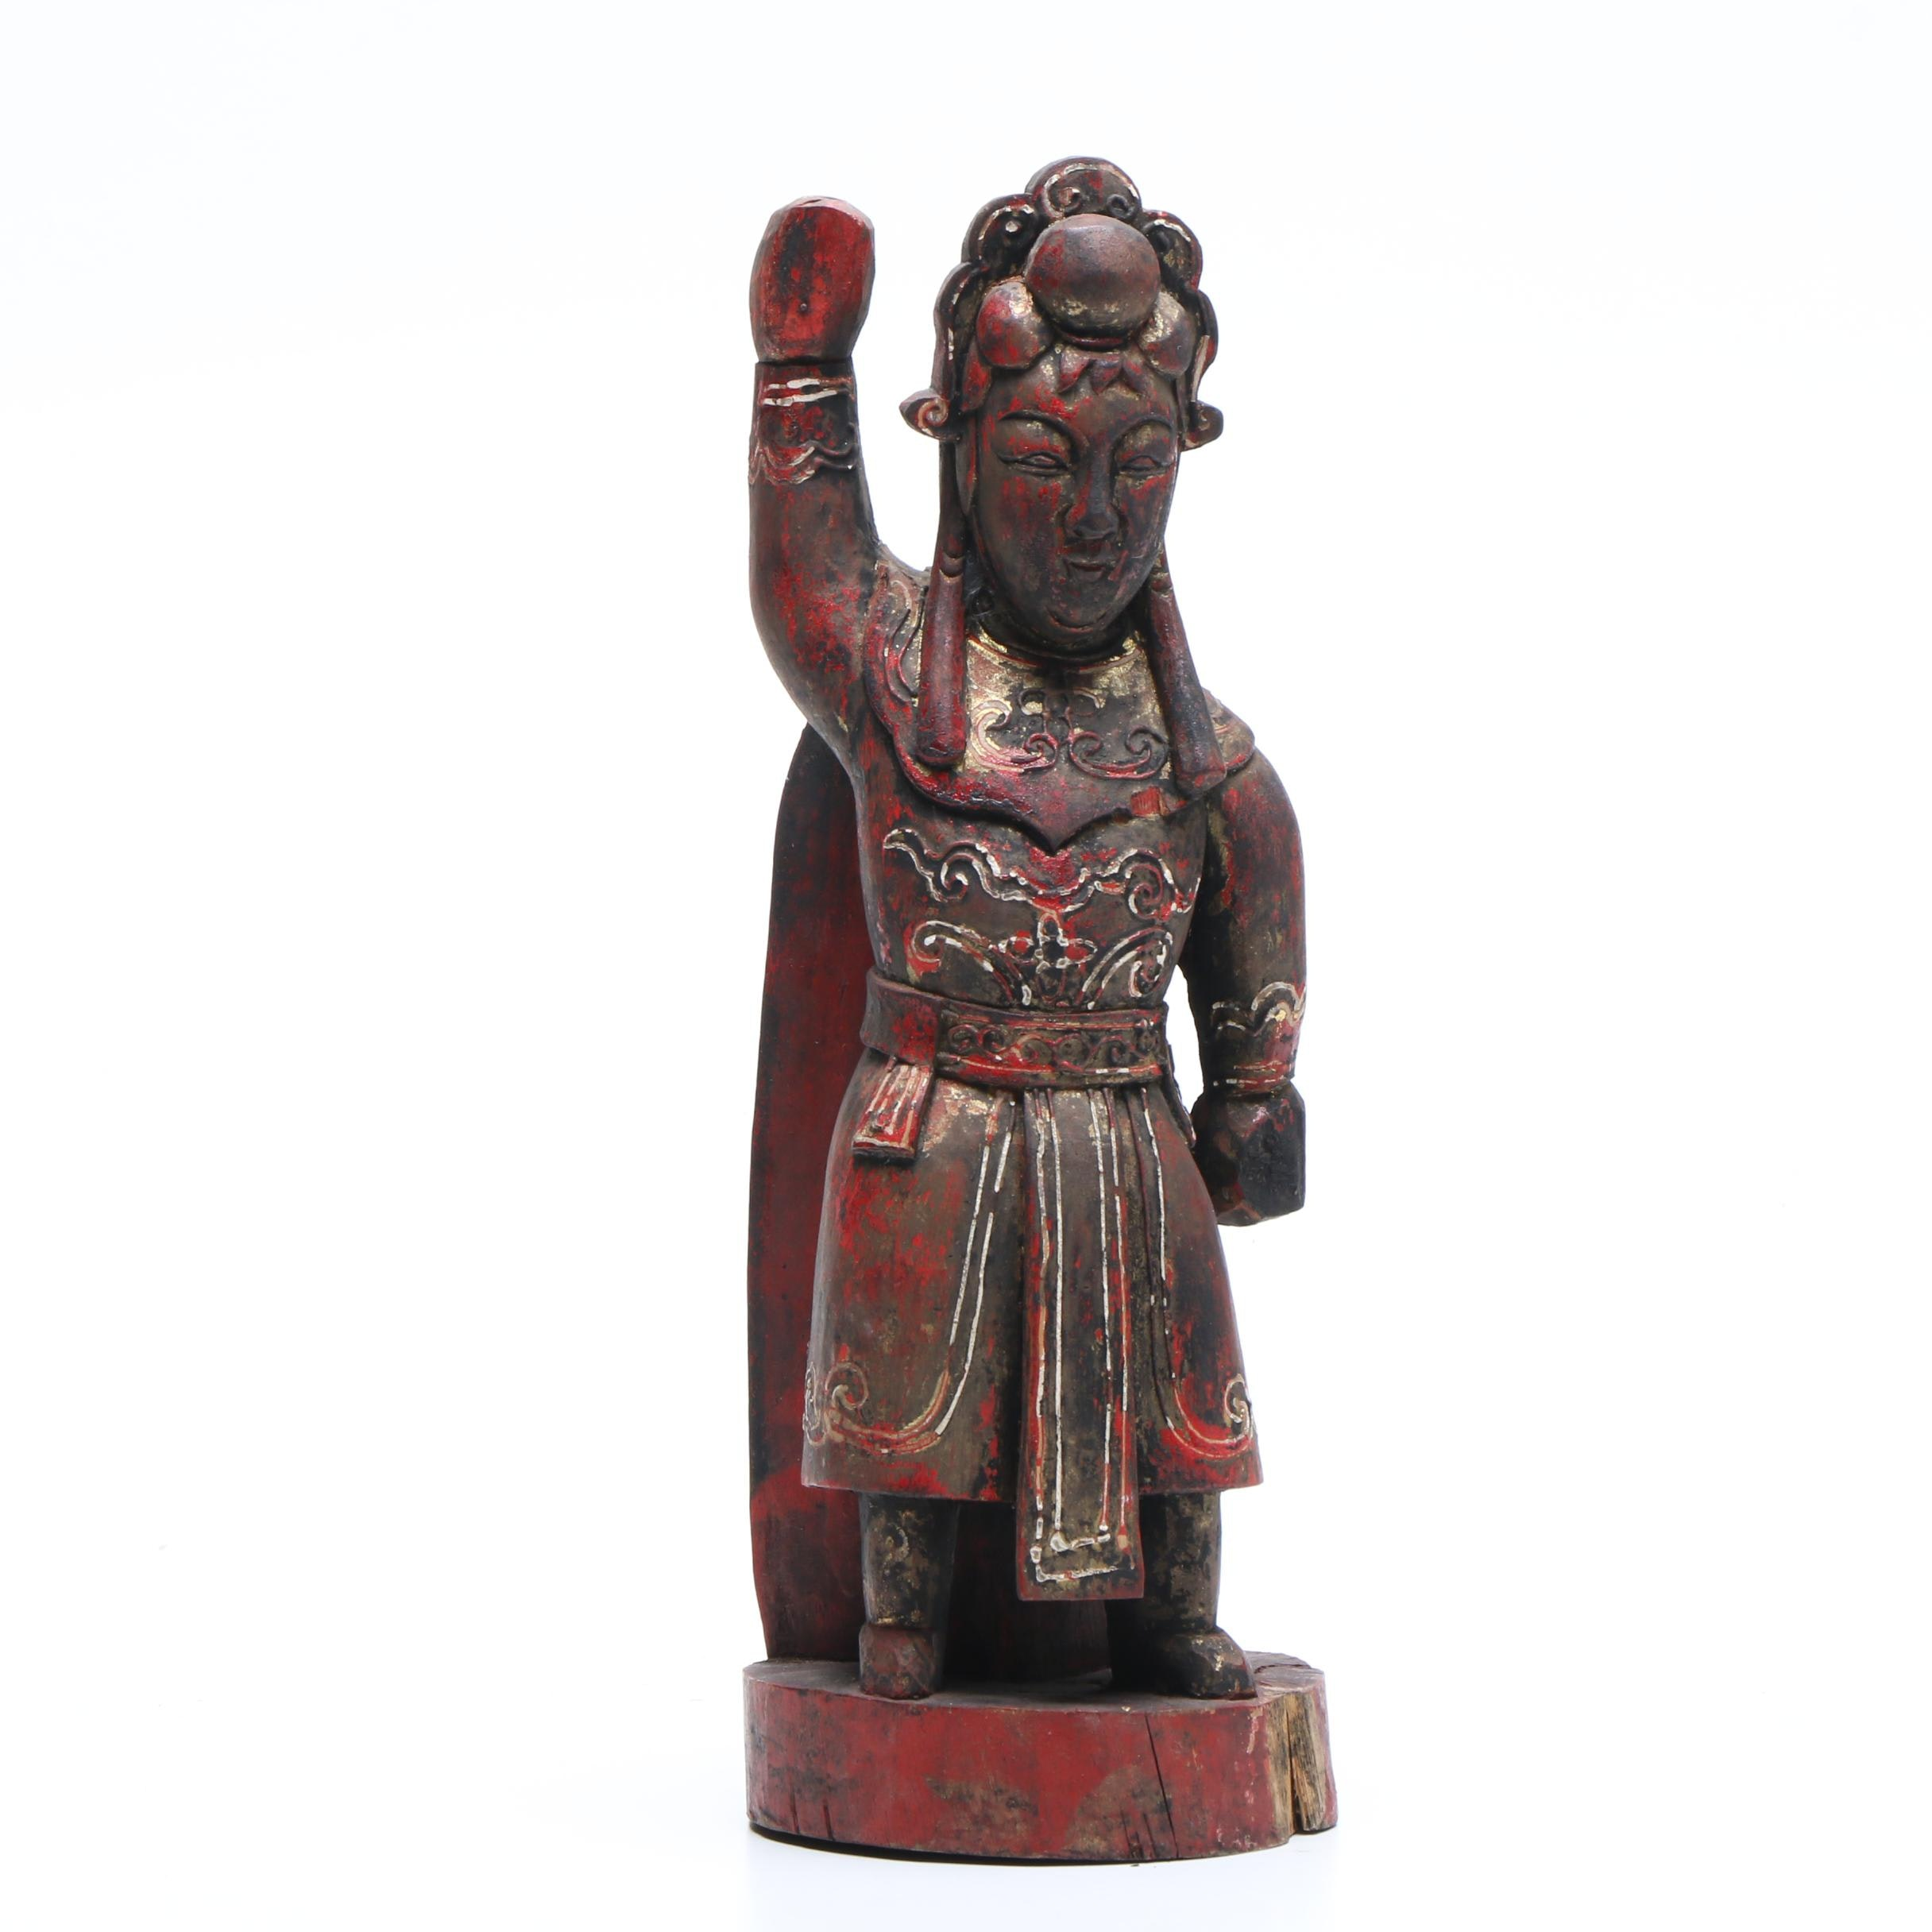 Late Qing Dynasty Chinese Warrior Architectural Carving